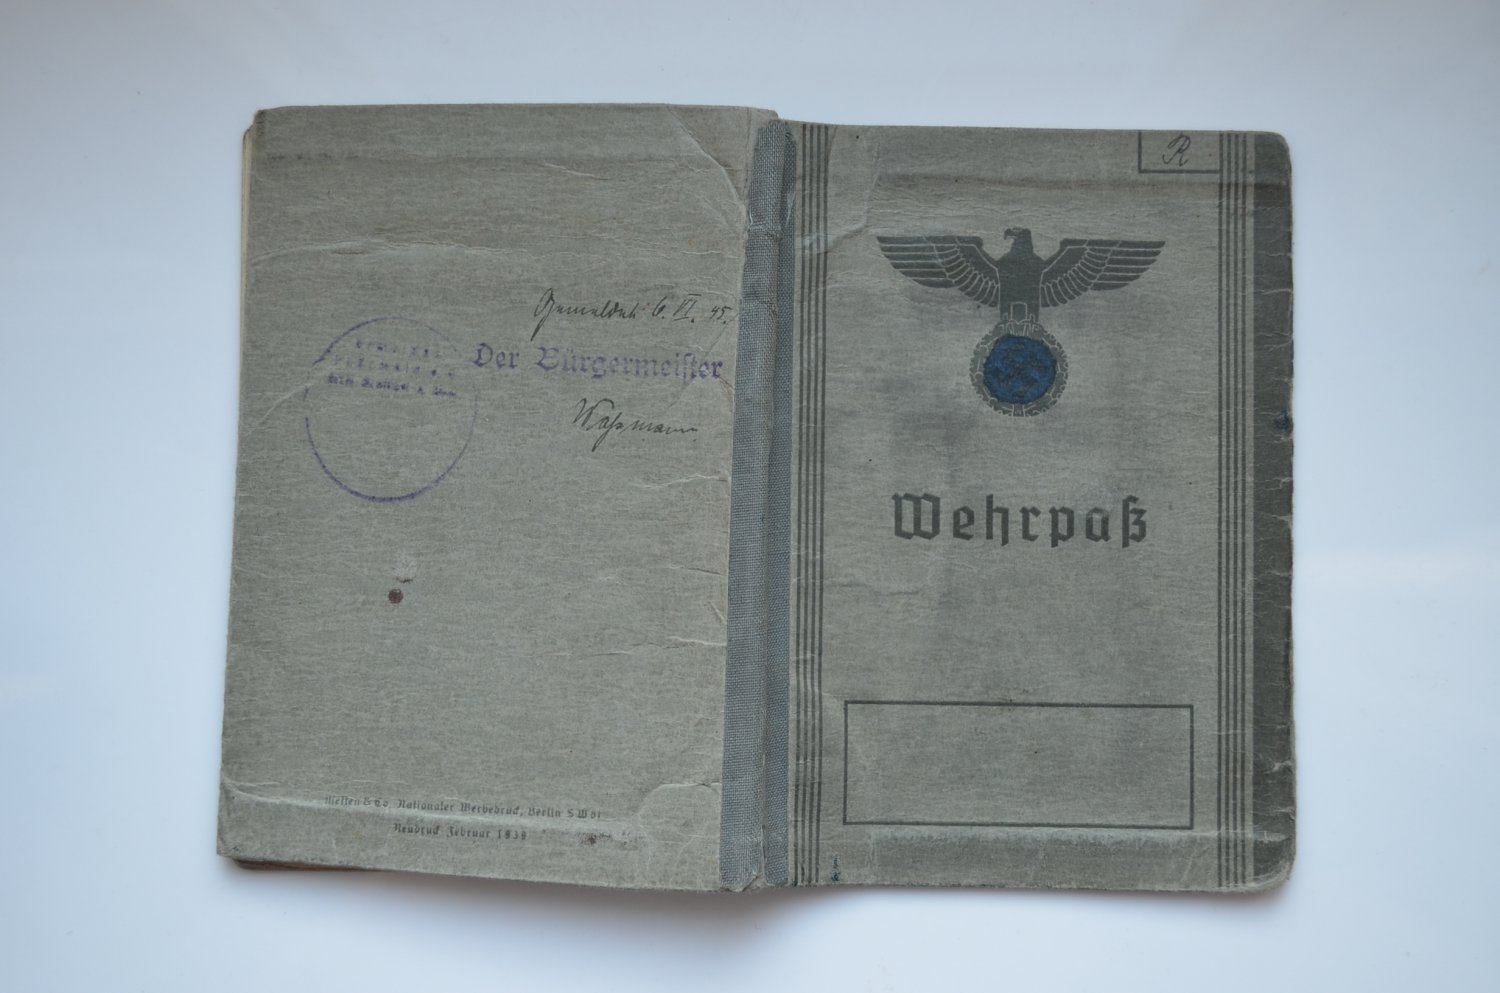 WWII WW2 ORIGINAL GERMAN DOCUMENT WEHRPASS